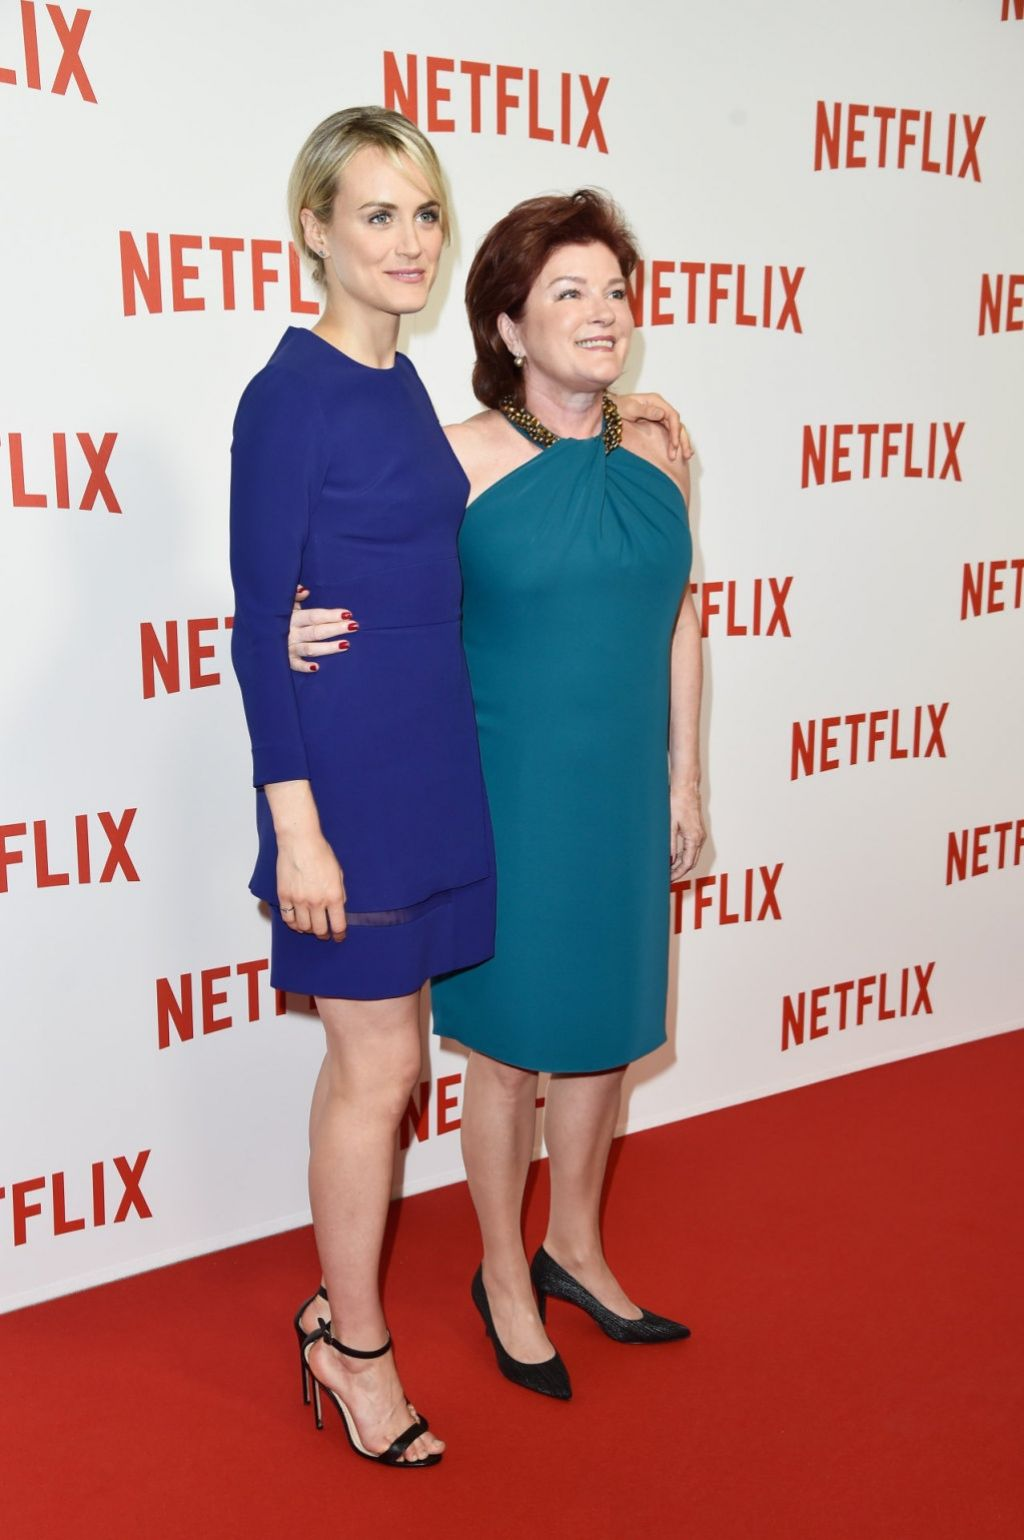 Kate Mulgrew Netflix Launch Party At Le Faust In Paris